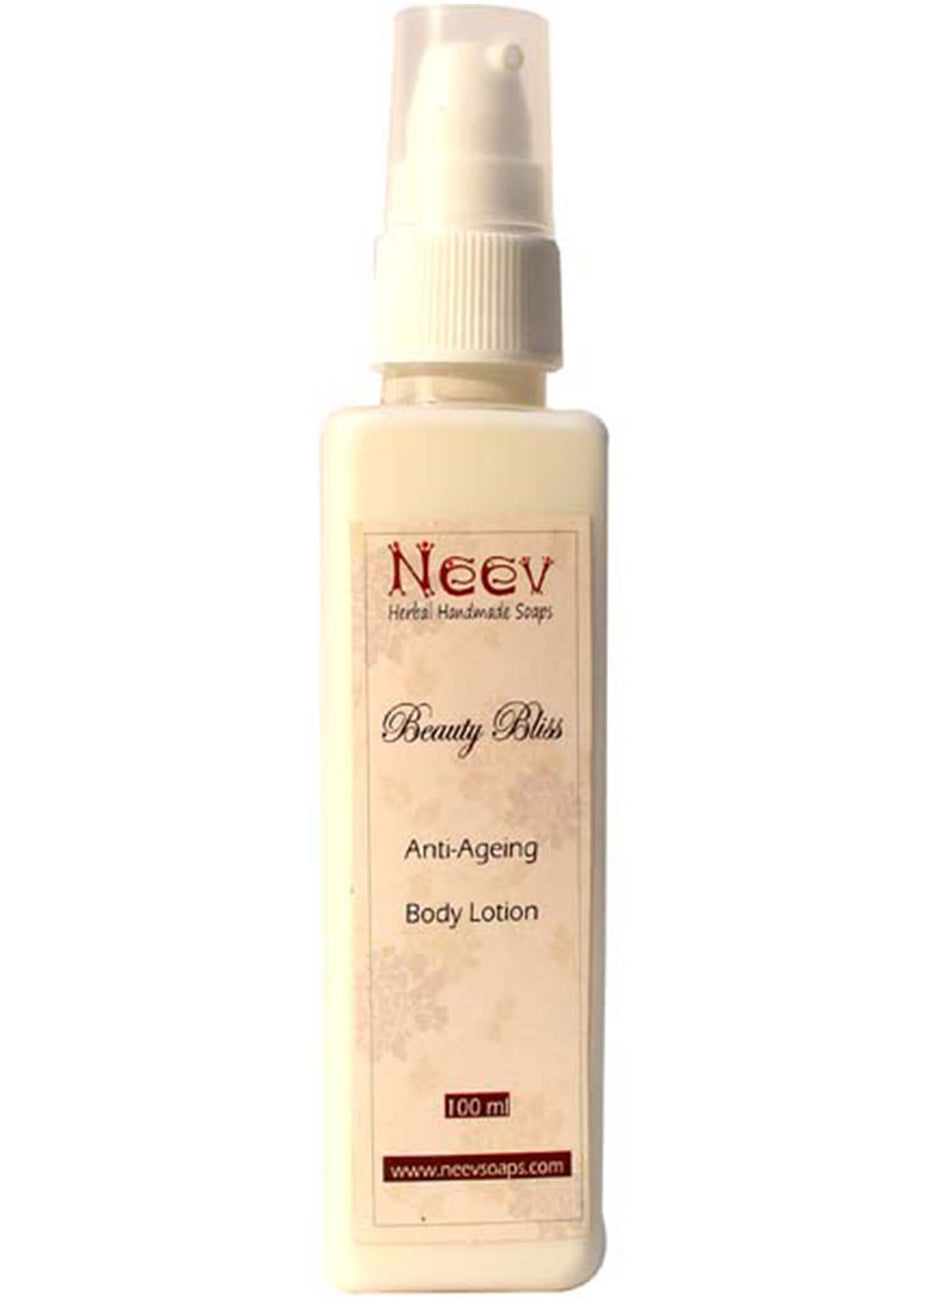 Neev Anti Ageing Beauty Bliss Lotion, Body lotion, Neev Herbal Handmade Soaps, ihaat, [made_in_india], [handmade] - ihaat